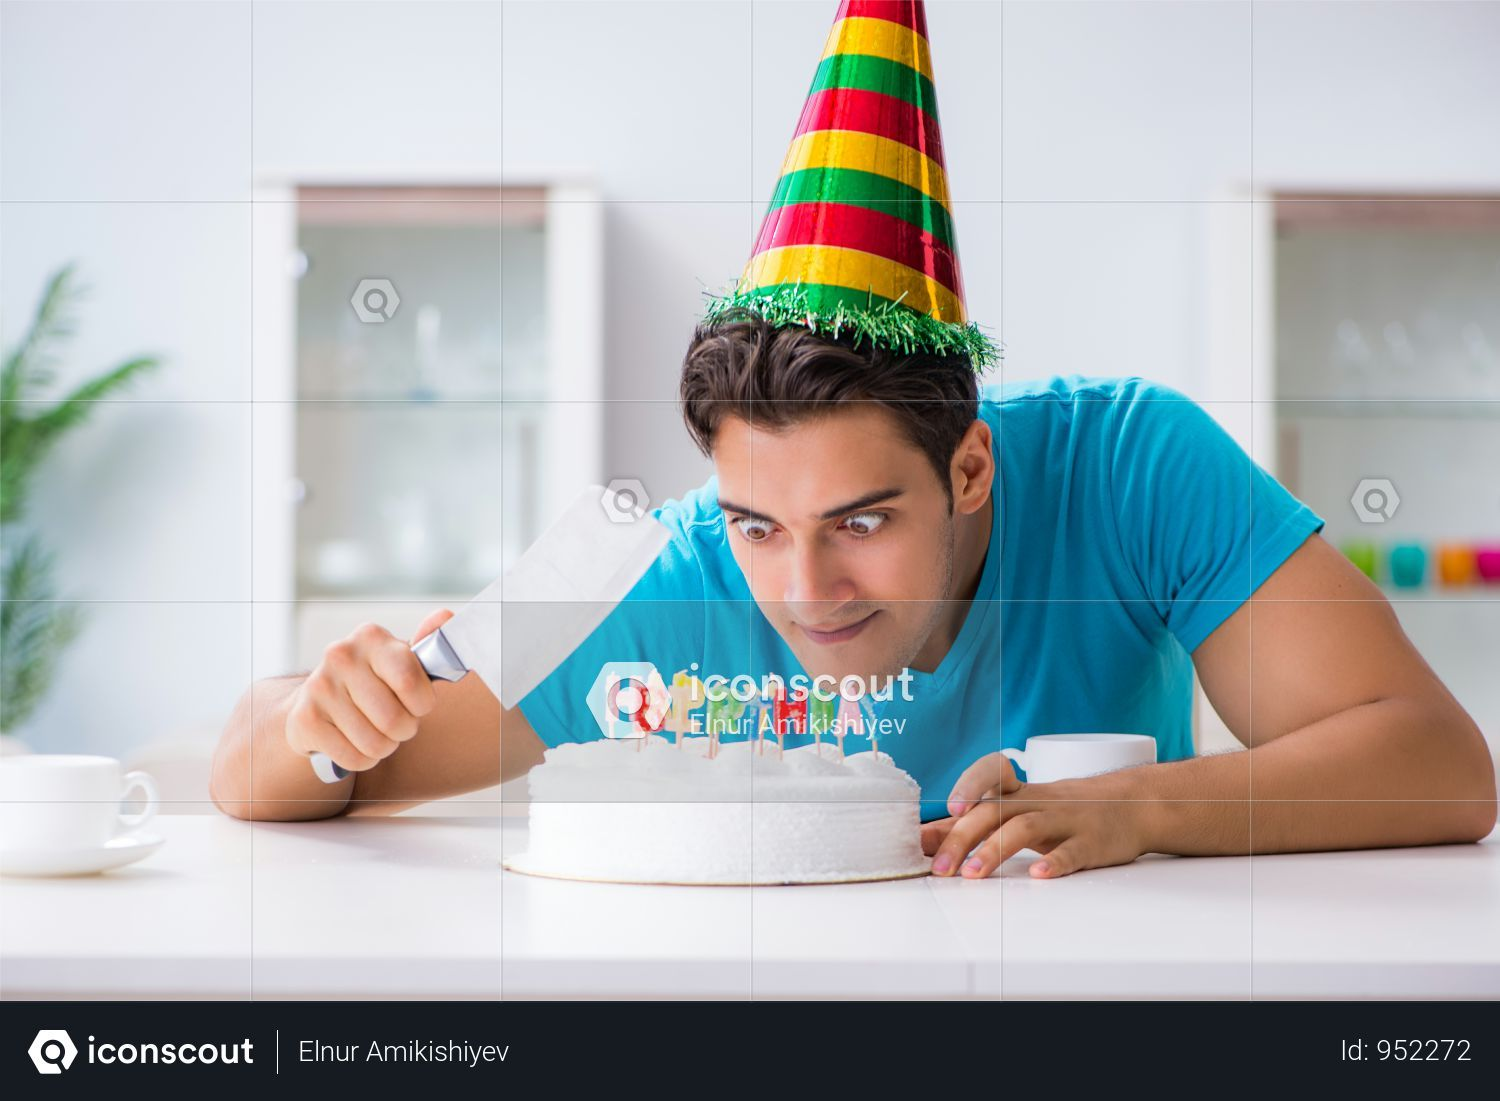 Premium Young Man Celebrating Birthday Alone At Home Photo Download In Png Jpg Format Birthday Cake For Him Birthday Celebration Birthday Dinner Party